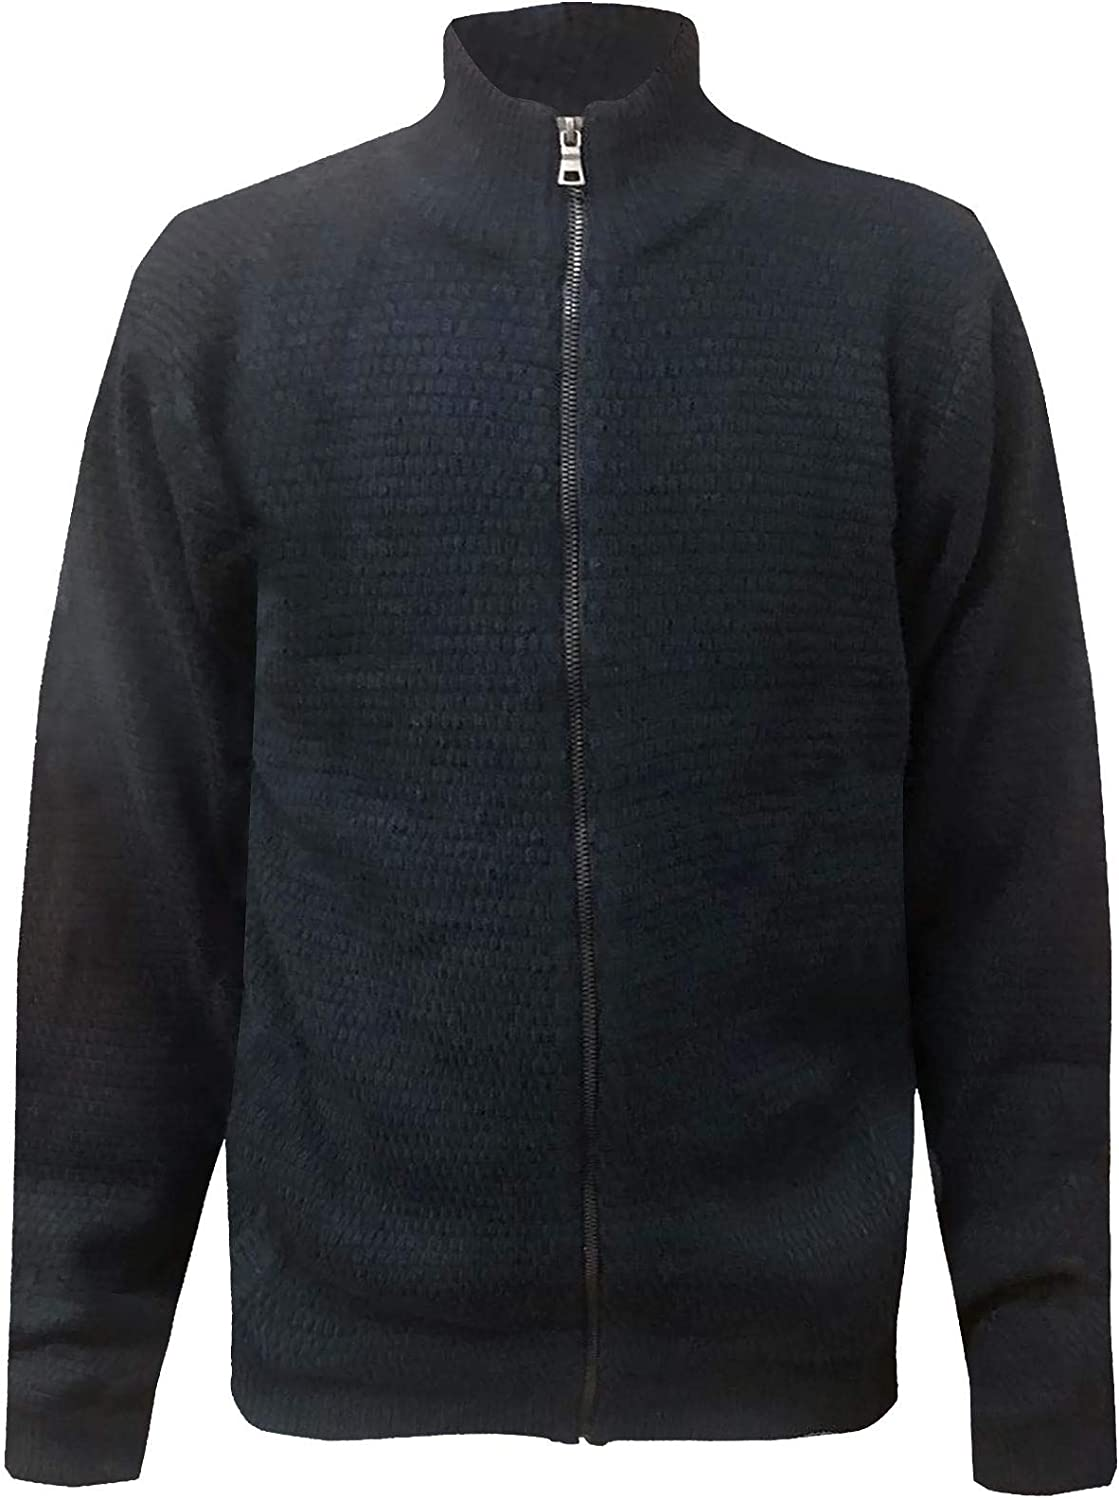 New Mens Marks /& Spencer Pure Cotton Textured Knitted Weave M/&S Zip Up Cardigan